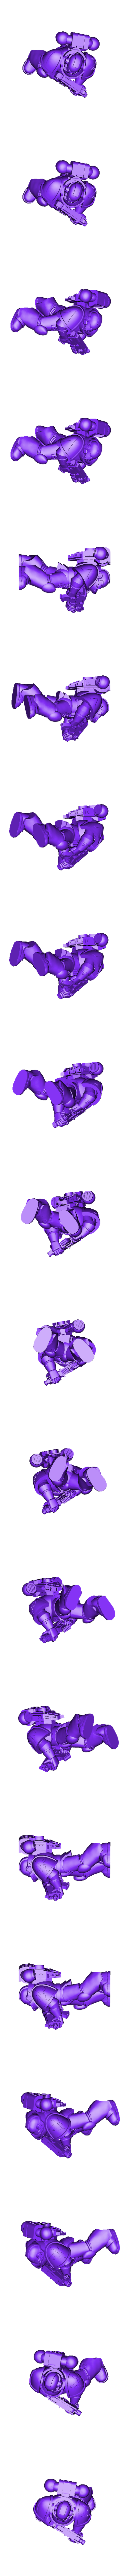 4_Normal_1.stl Download free STL file Angelic Space Soldiers with Heavy Weapons • Template to 3D print, PhysUdo